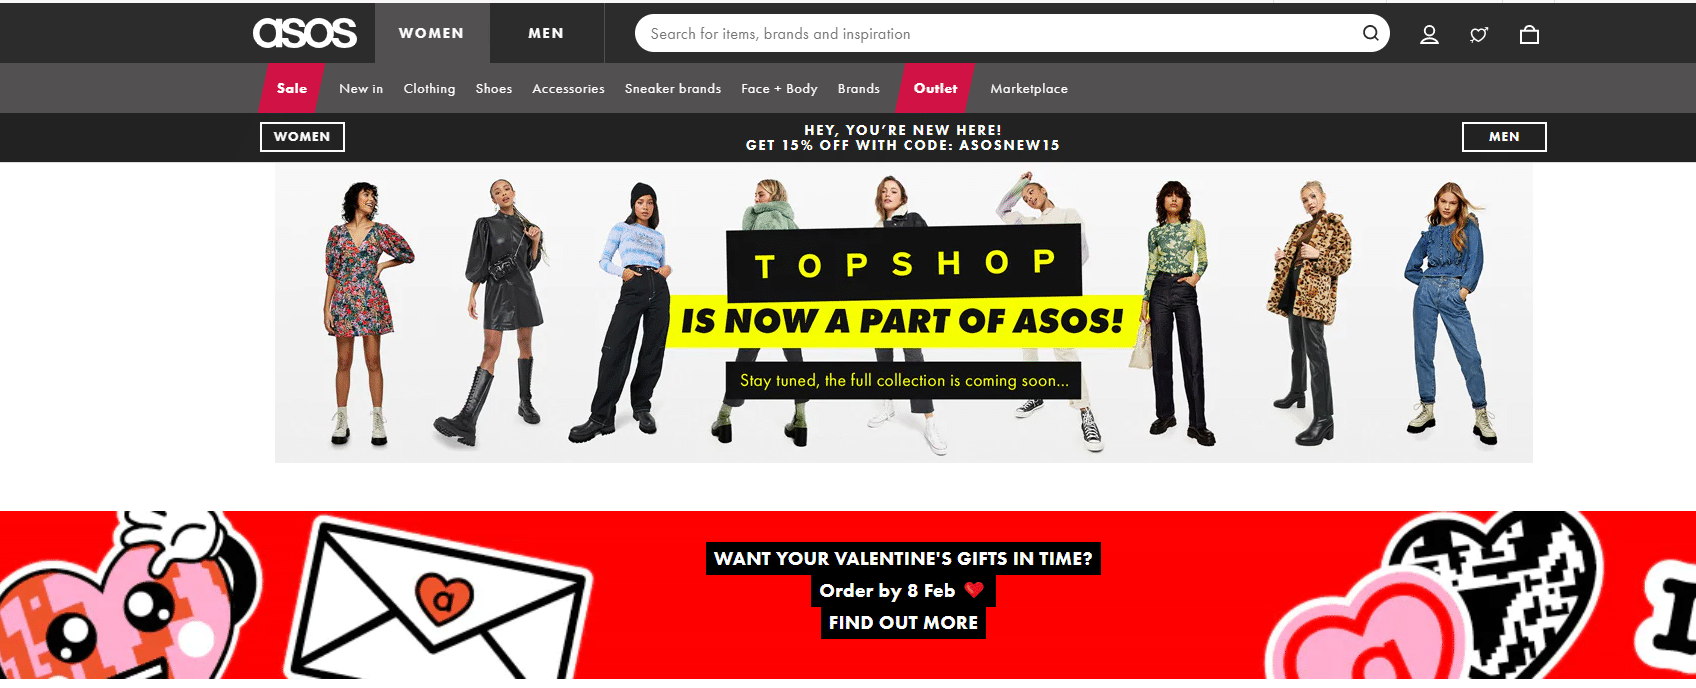 asos 15% off coupon code for first order